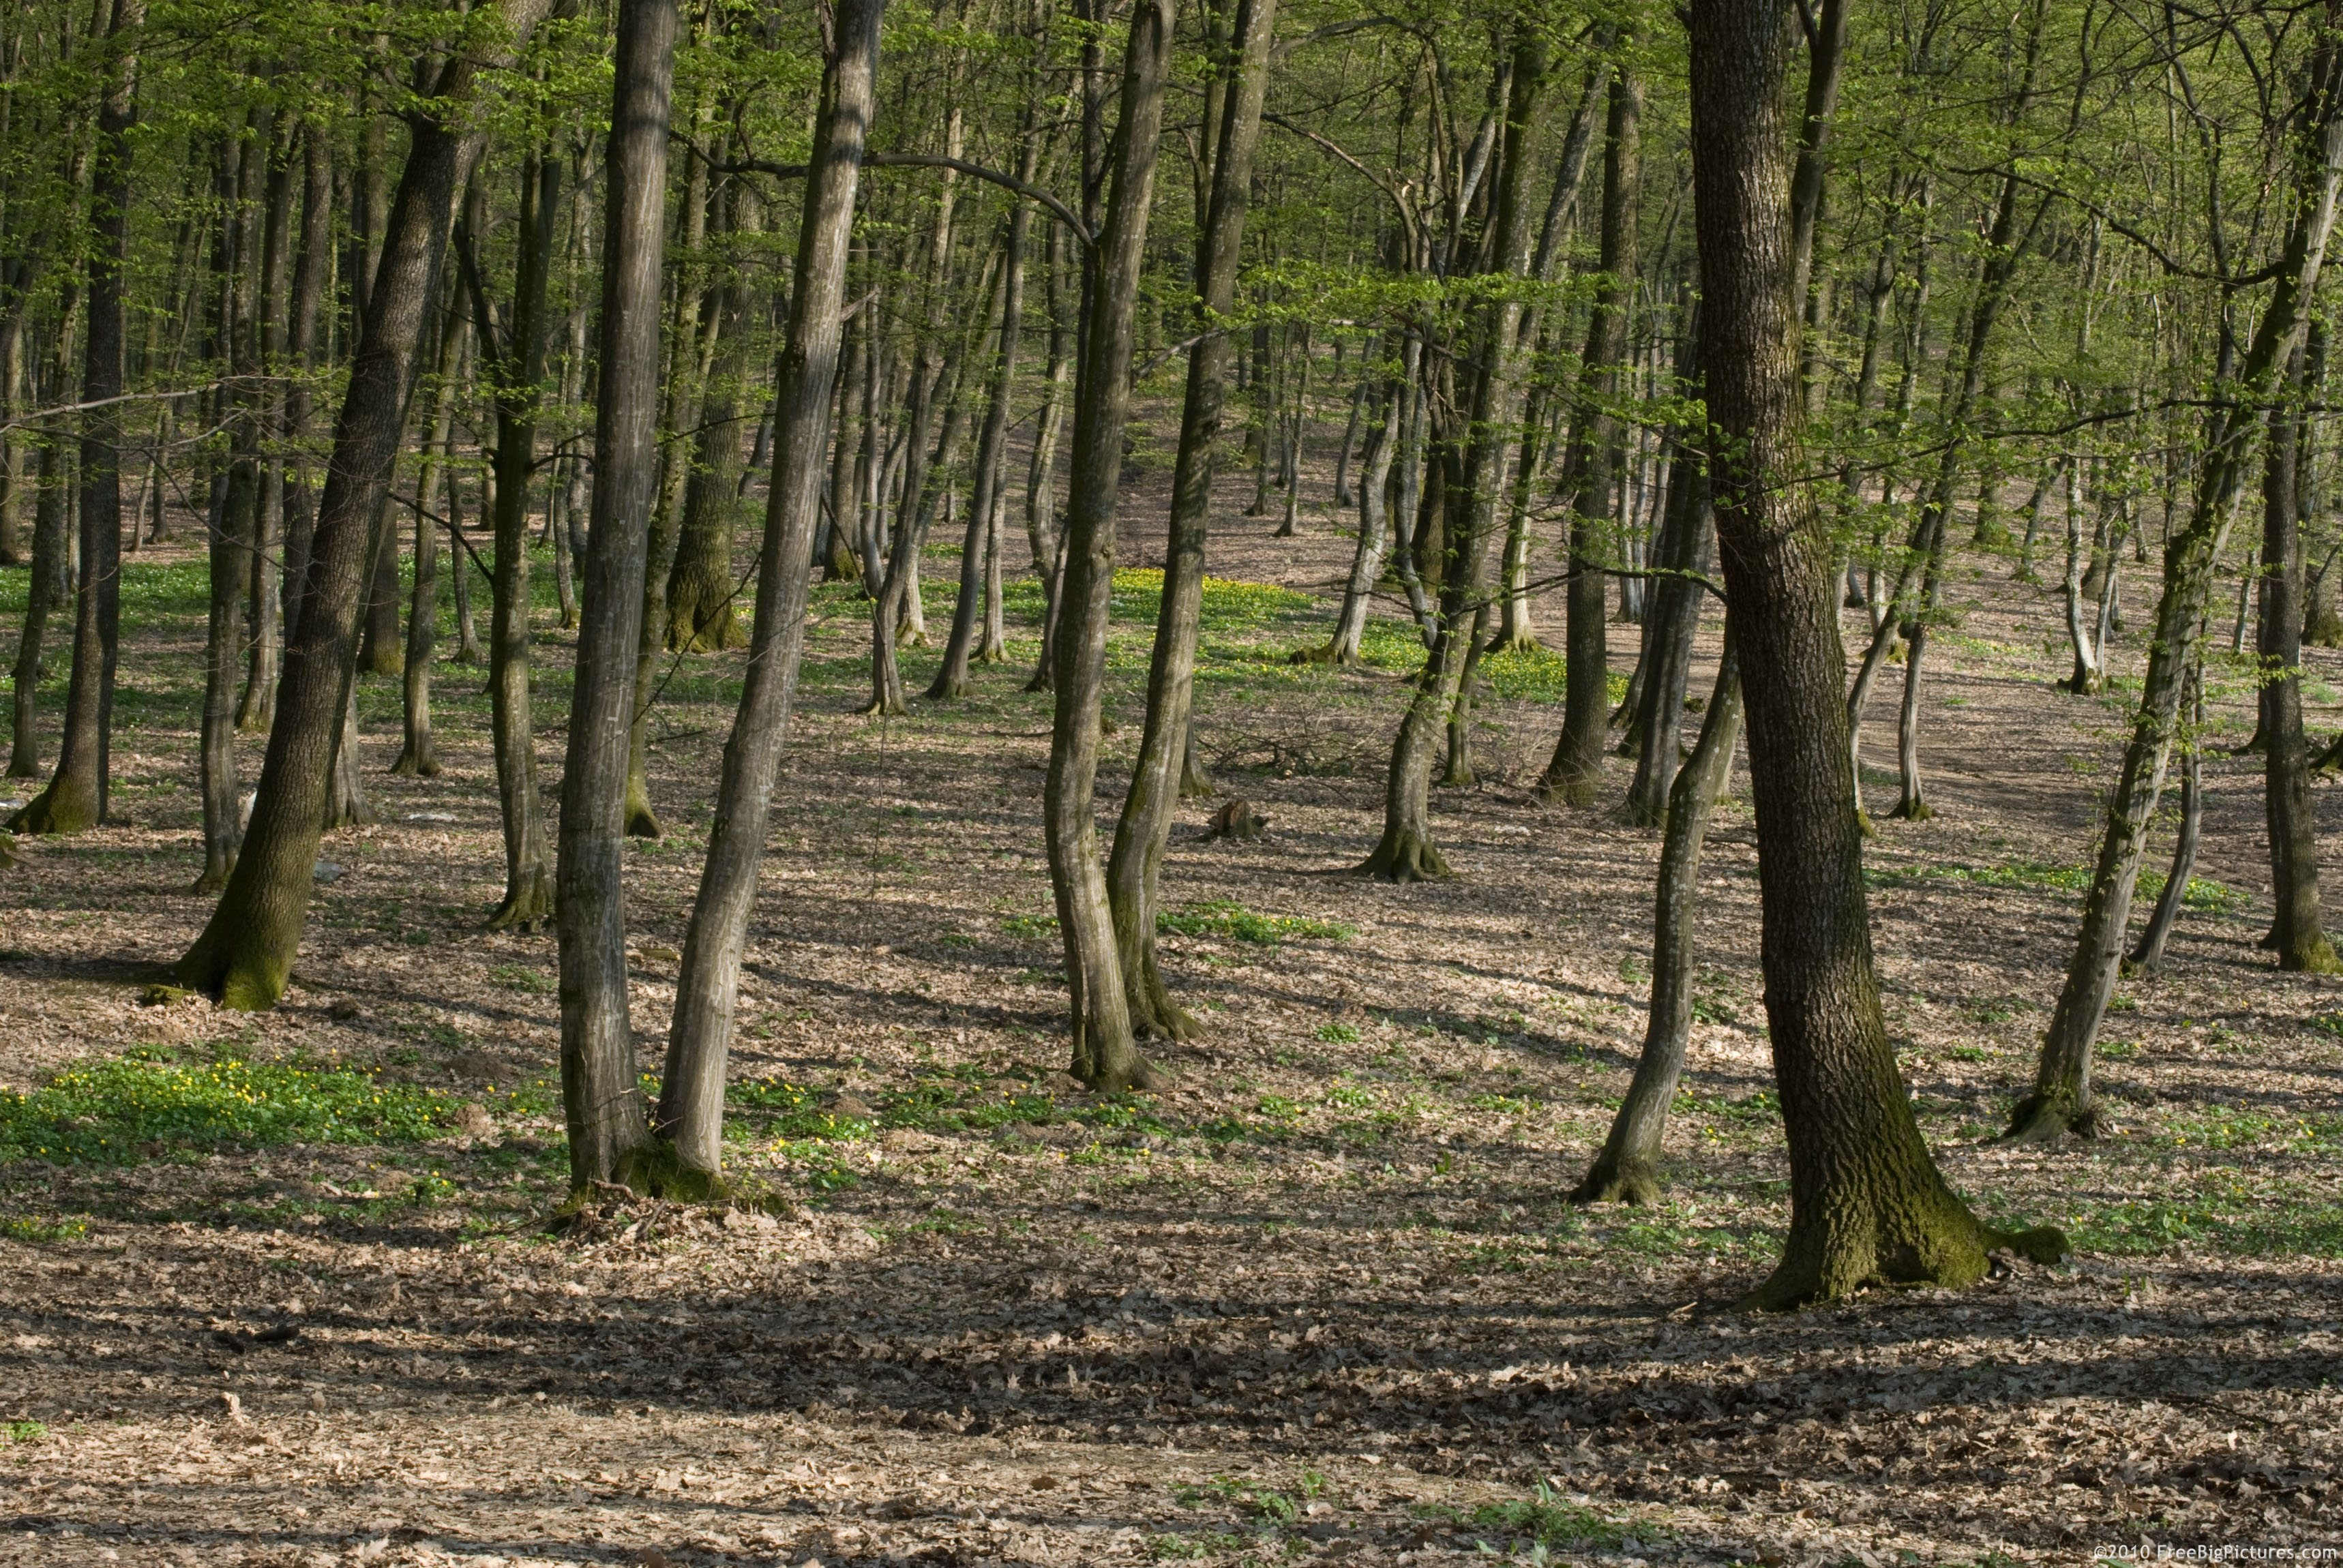 Headquartered in hot springs, arkansas, the forest is managed for multiple uses, including timber and wood production, watershed protection and improvement, habitat for wildlife and fish species (including threatened and endangered ones), wilderness area management, minerals leasing, and. Forest Plants Freebigpictures Com